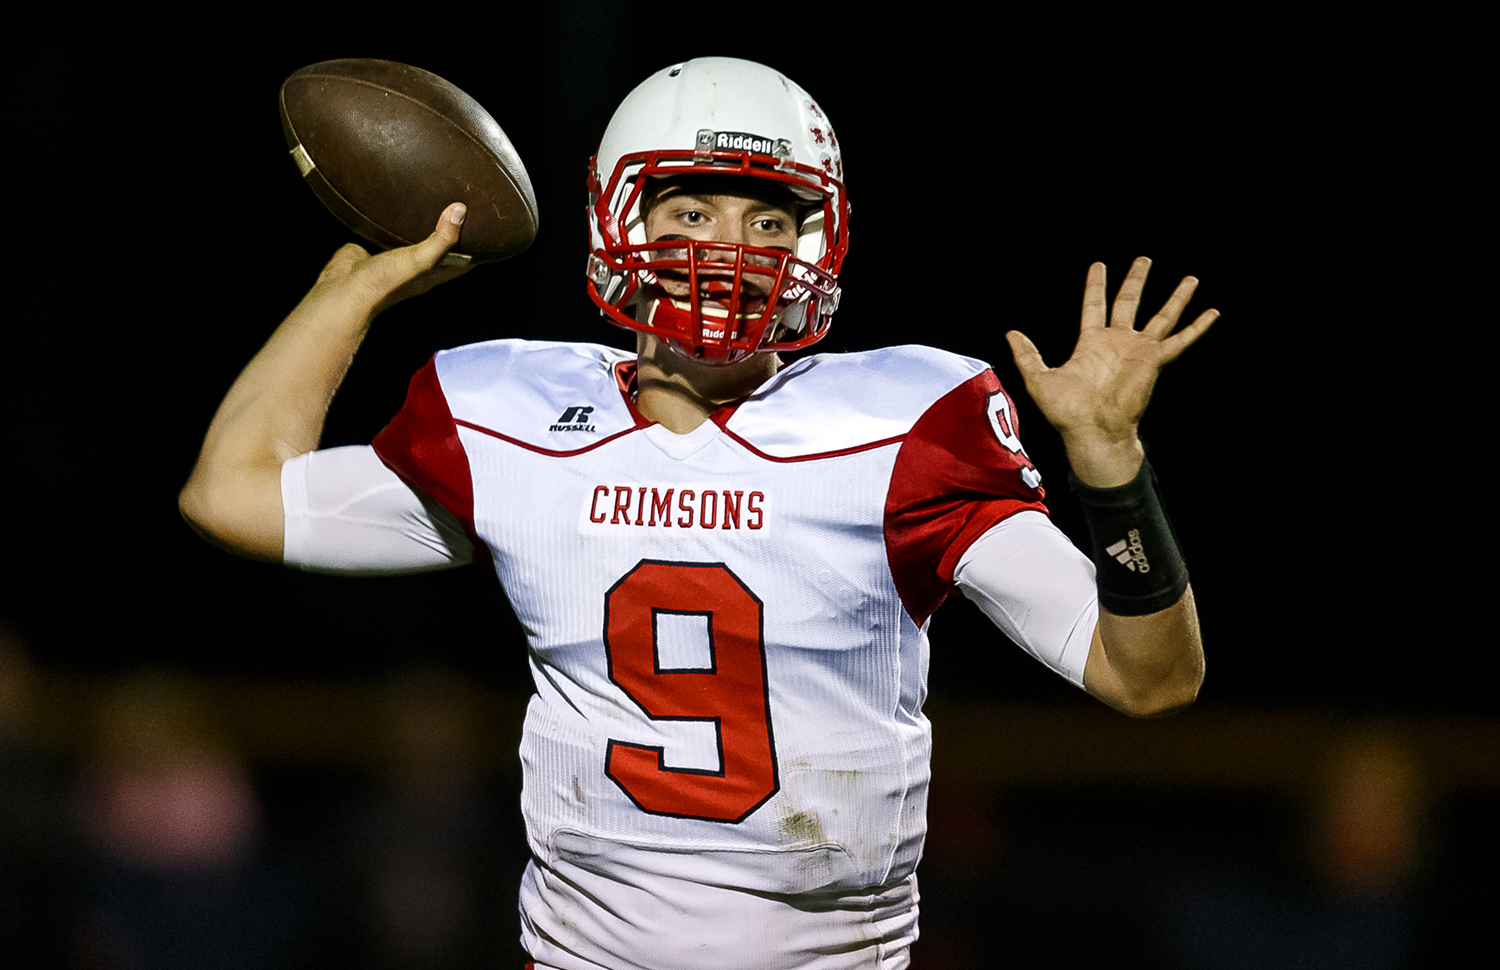 Jacksonville's Joe Brannan (9) launches a pass against Rochester during the second half at Rocket Booster Field, Friday, Oct. 10, 2014, in Rochester, Ill. Justin L. Fowler/The State Journal-Register